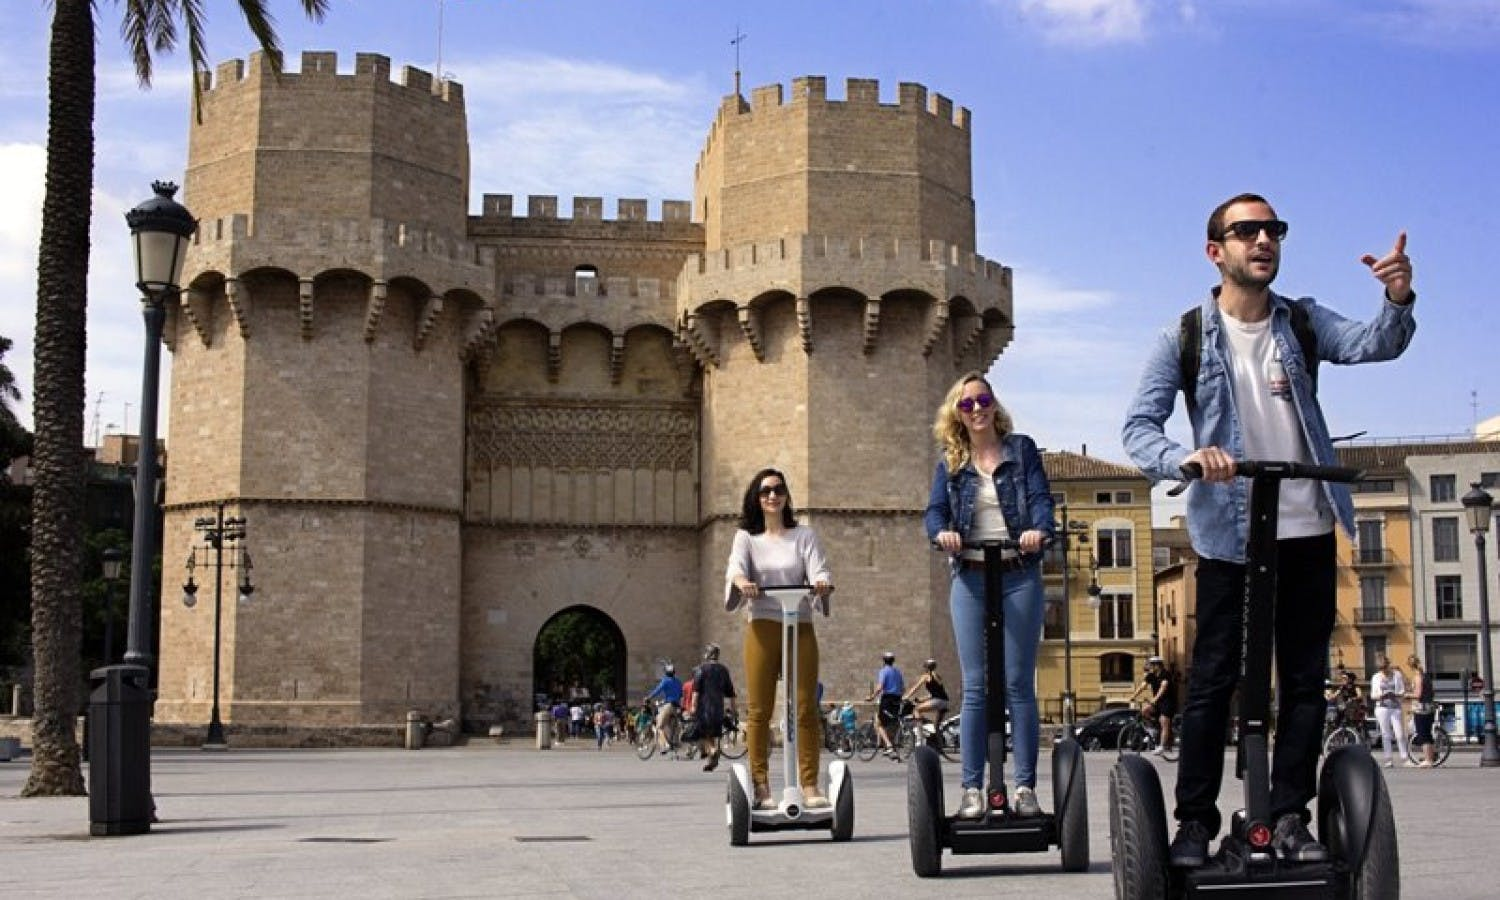 Segwaytour Valencia Arts and Sciences